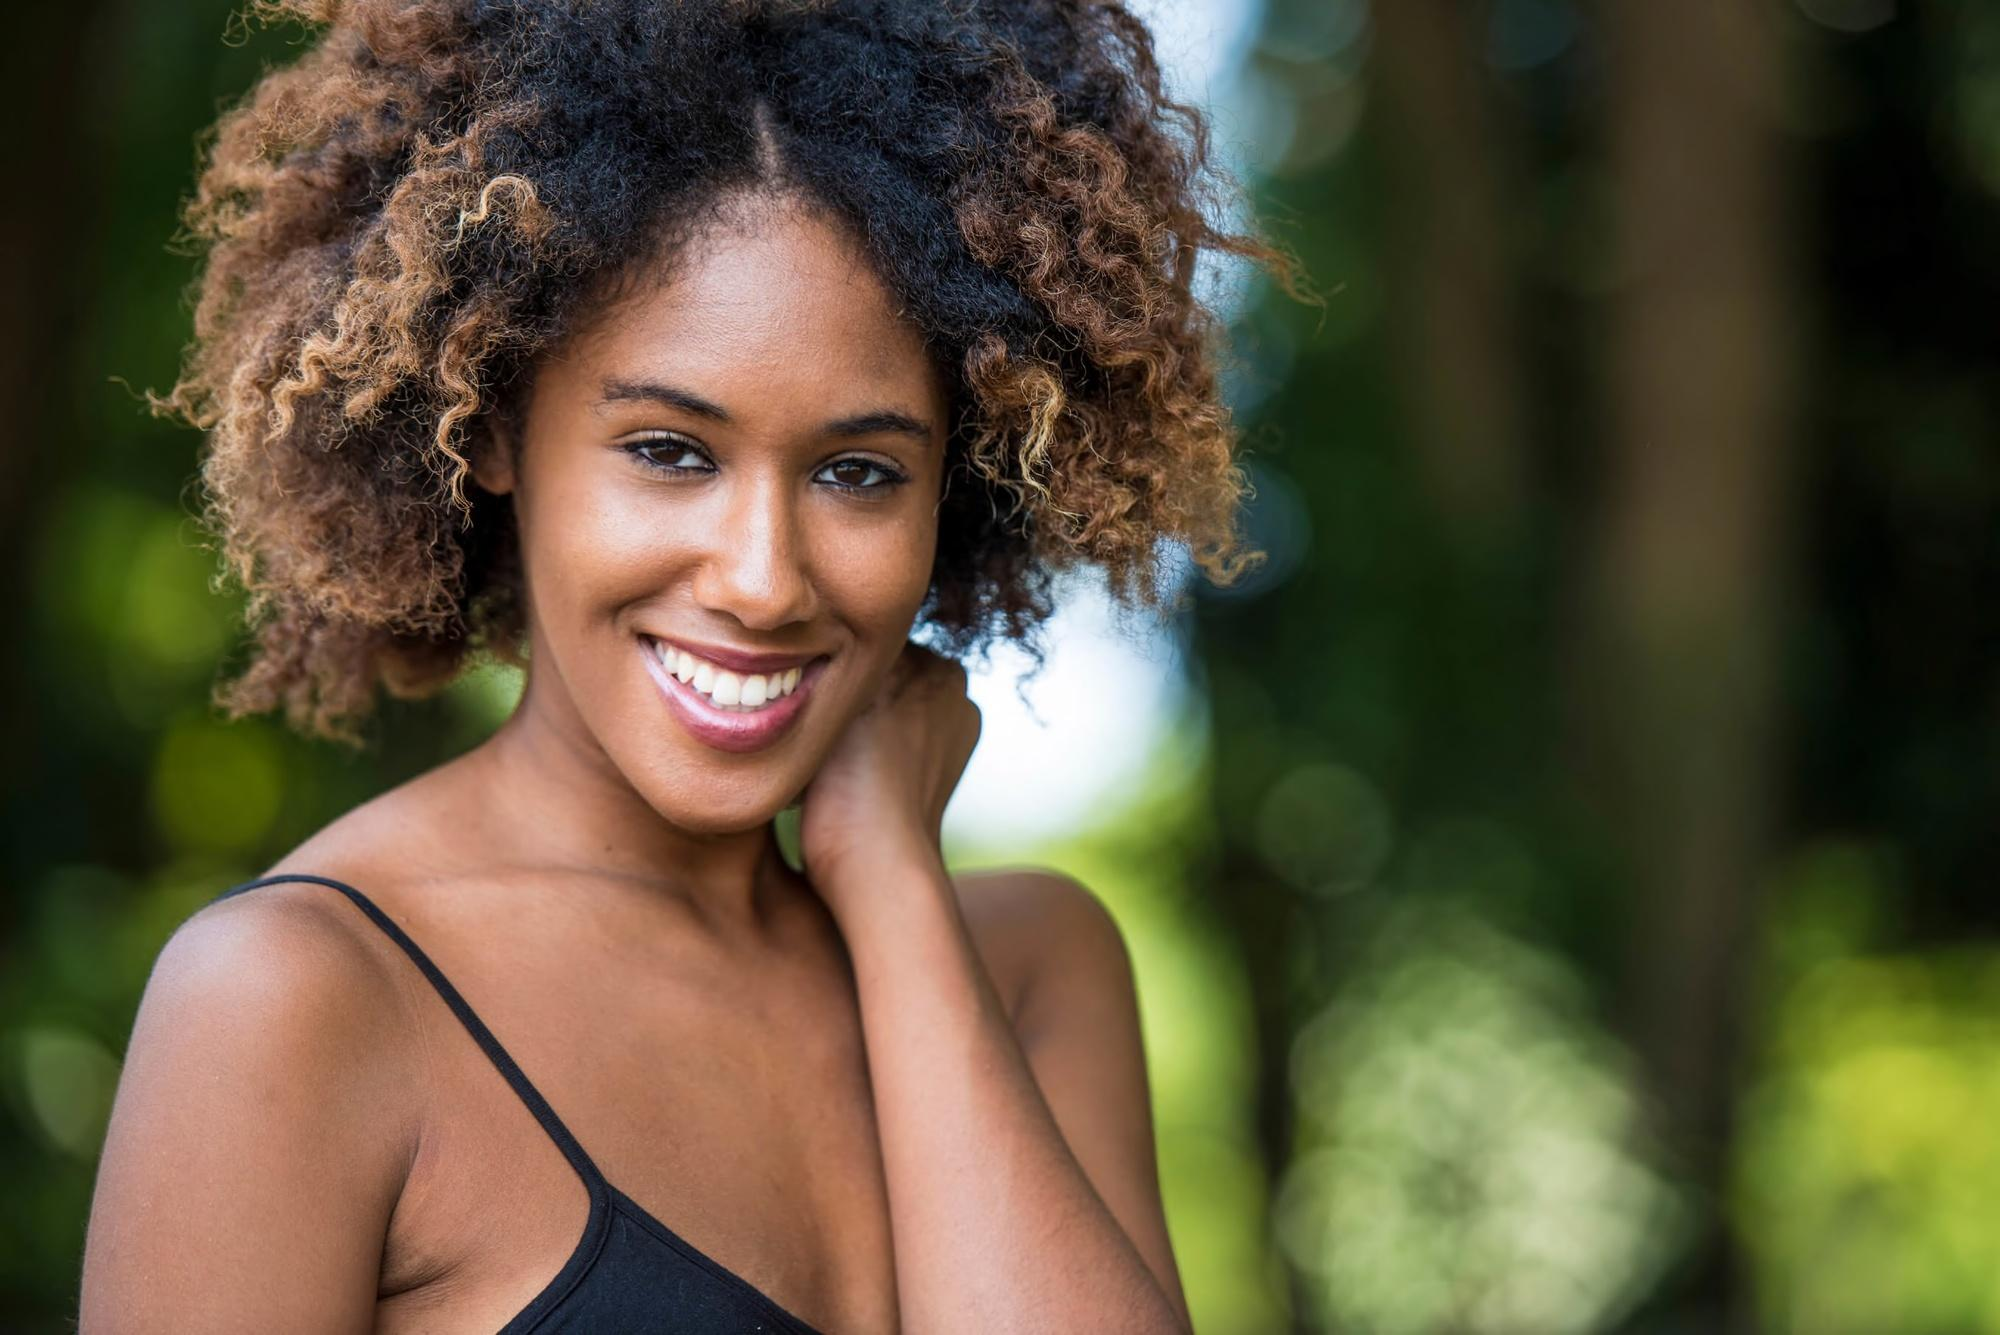 afro hairstyles and hair trends, plus afro hair styling tips